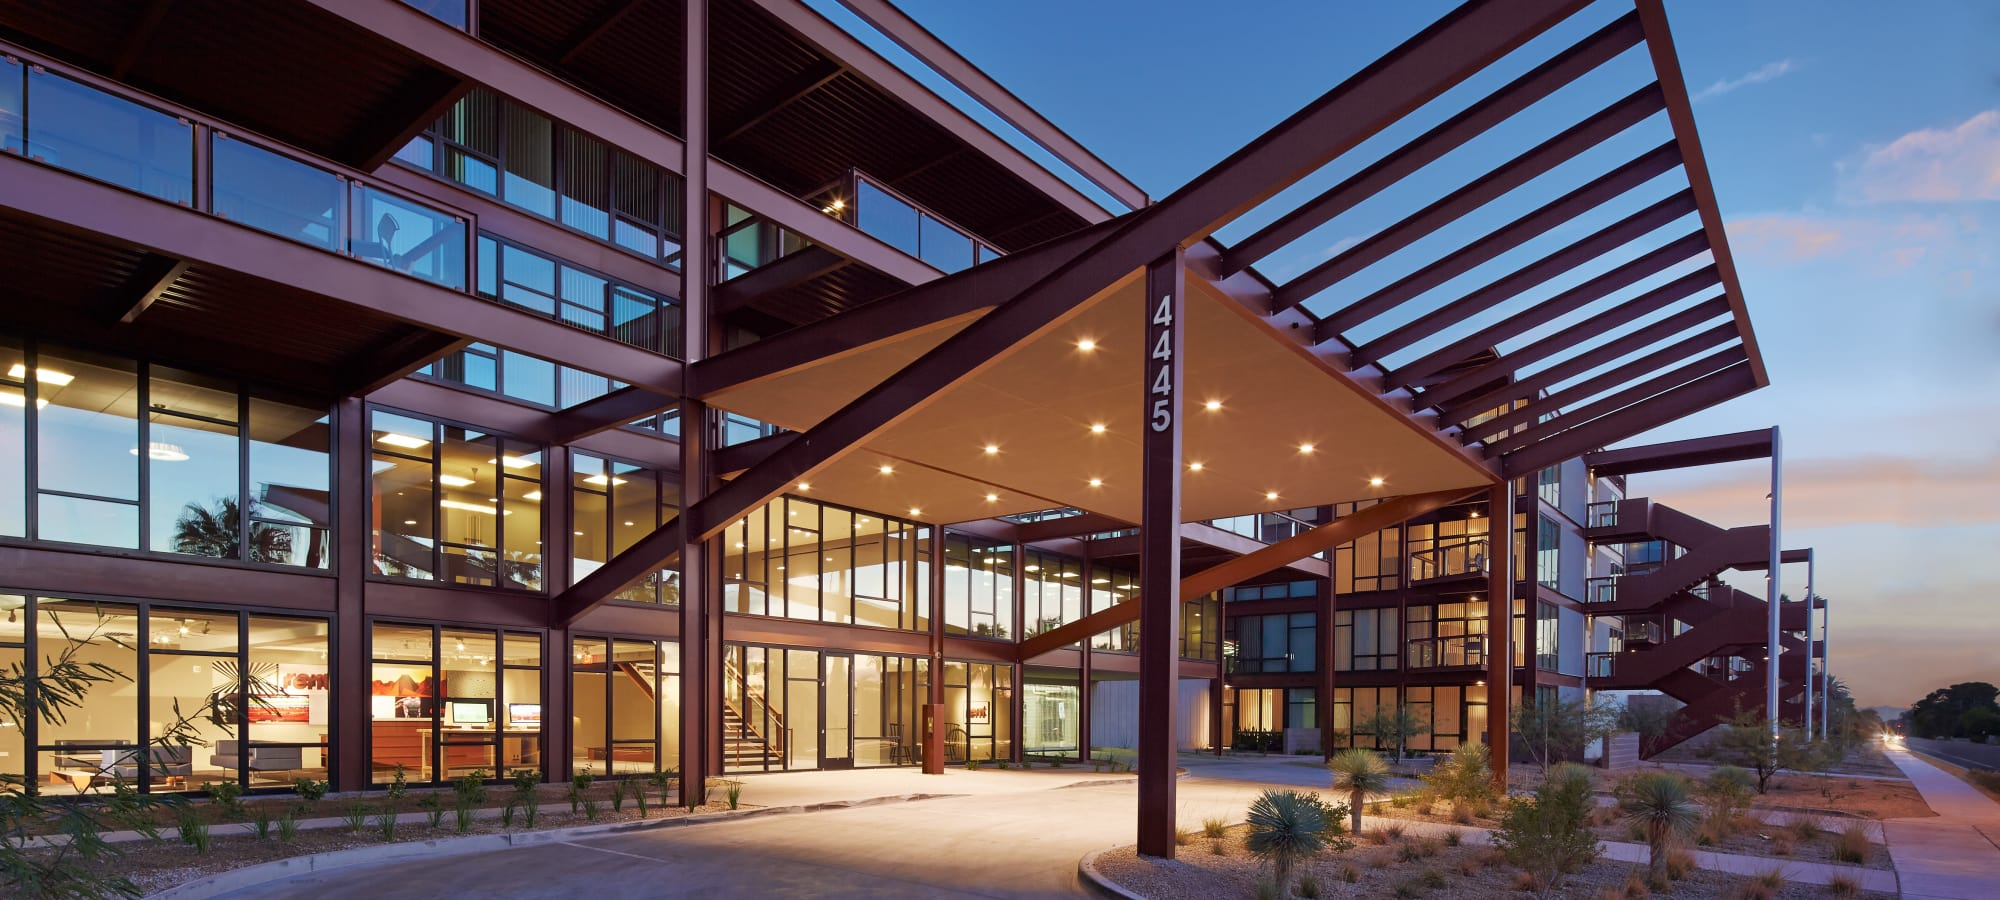 Exterior view of the entrance at Domus in Phoenix, Arizona